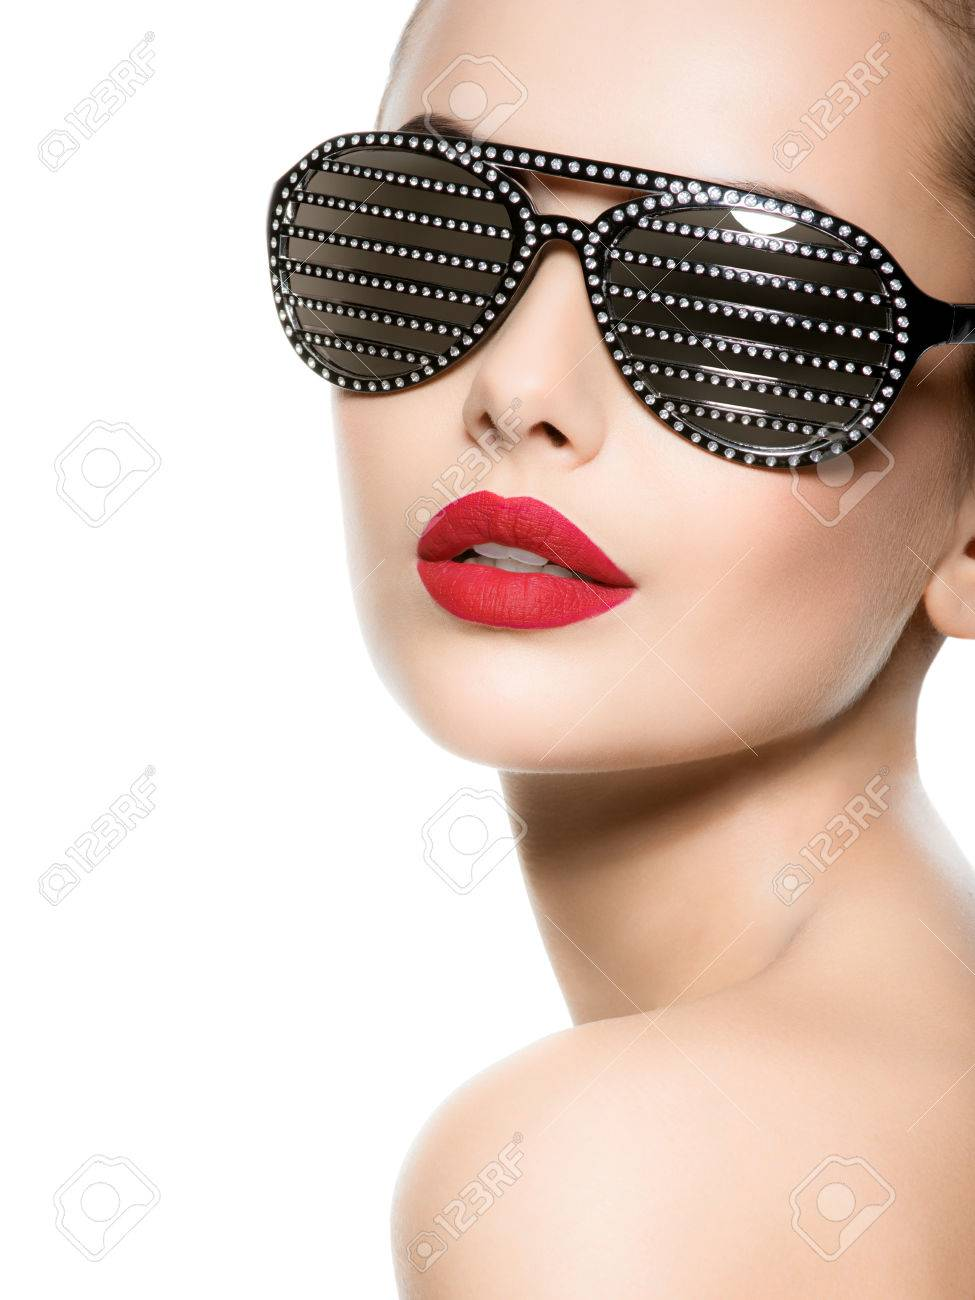 Fashion portrait of  woman wearing black sunglasses with diamonds and red lips Banque d'images - 54184065